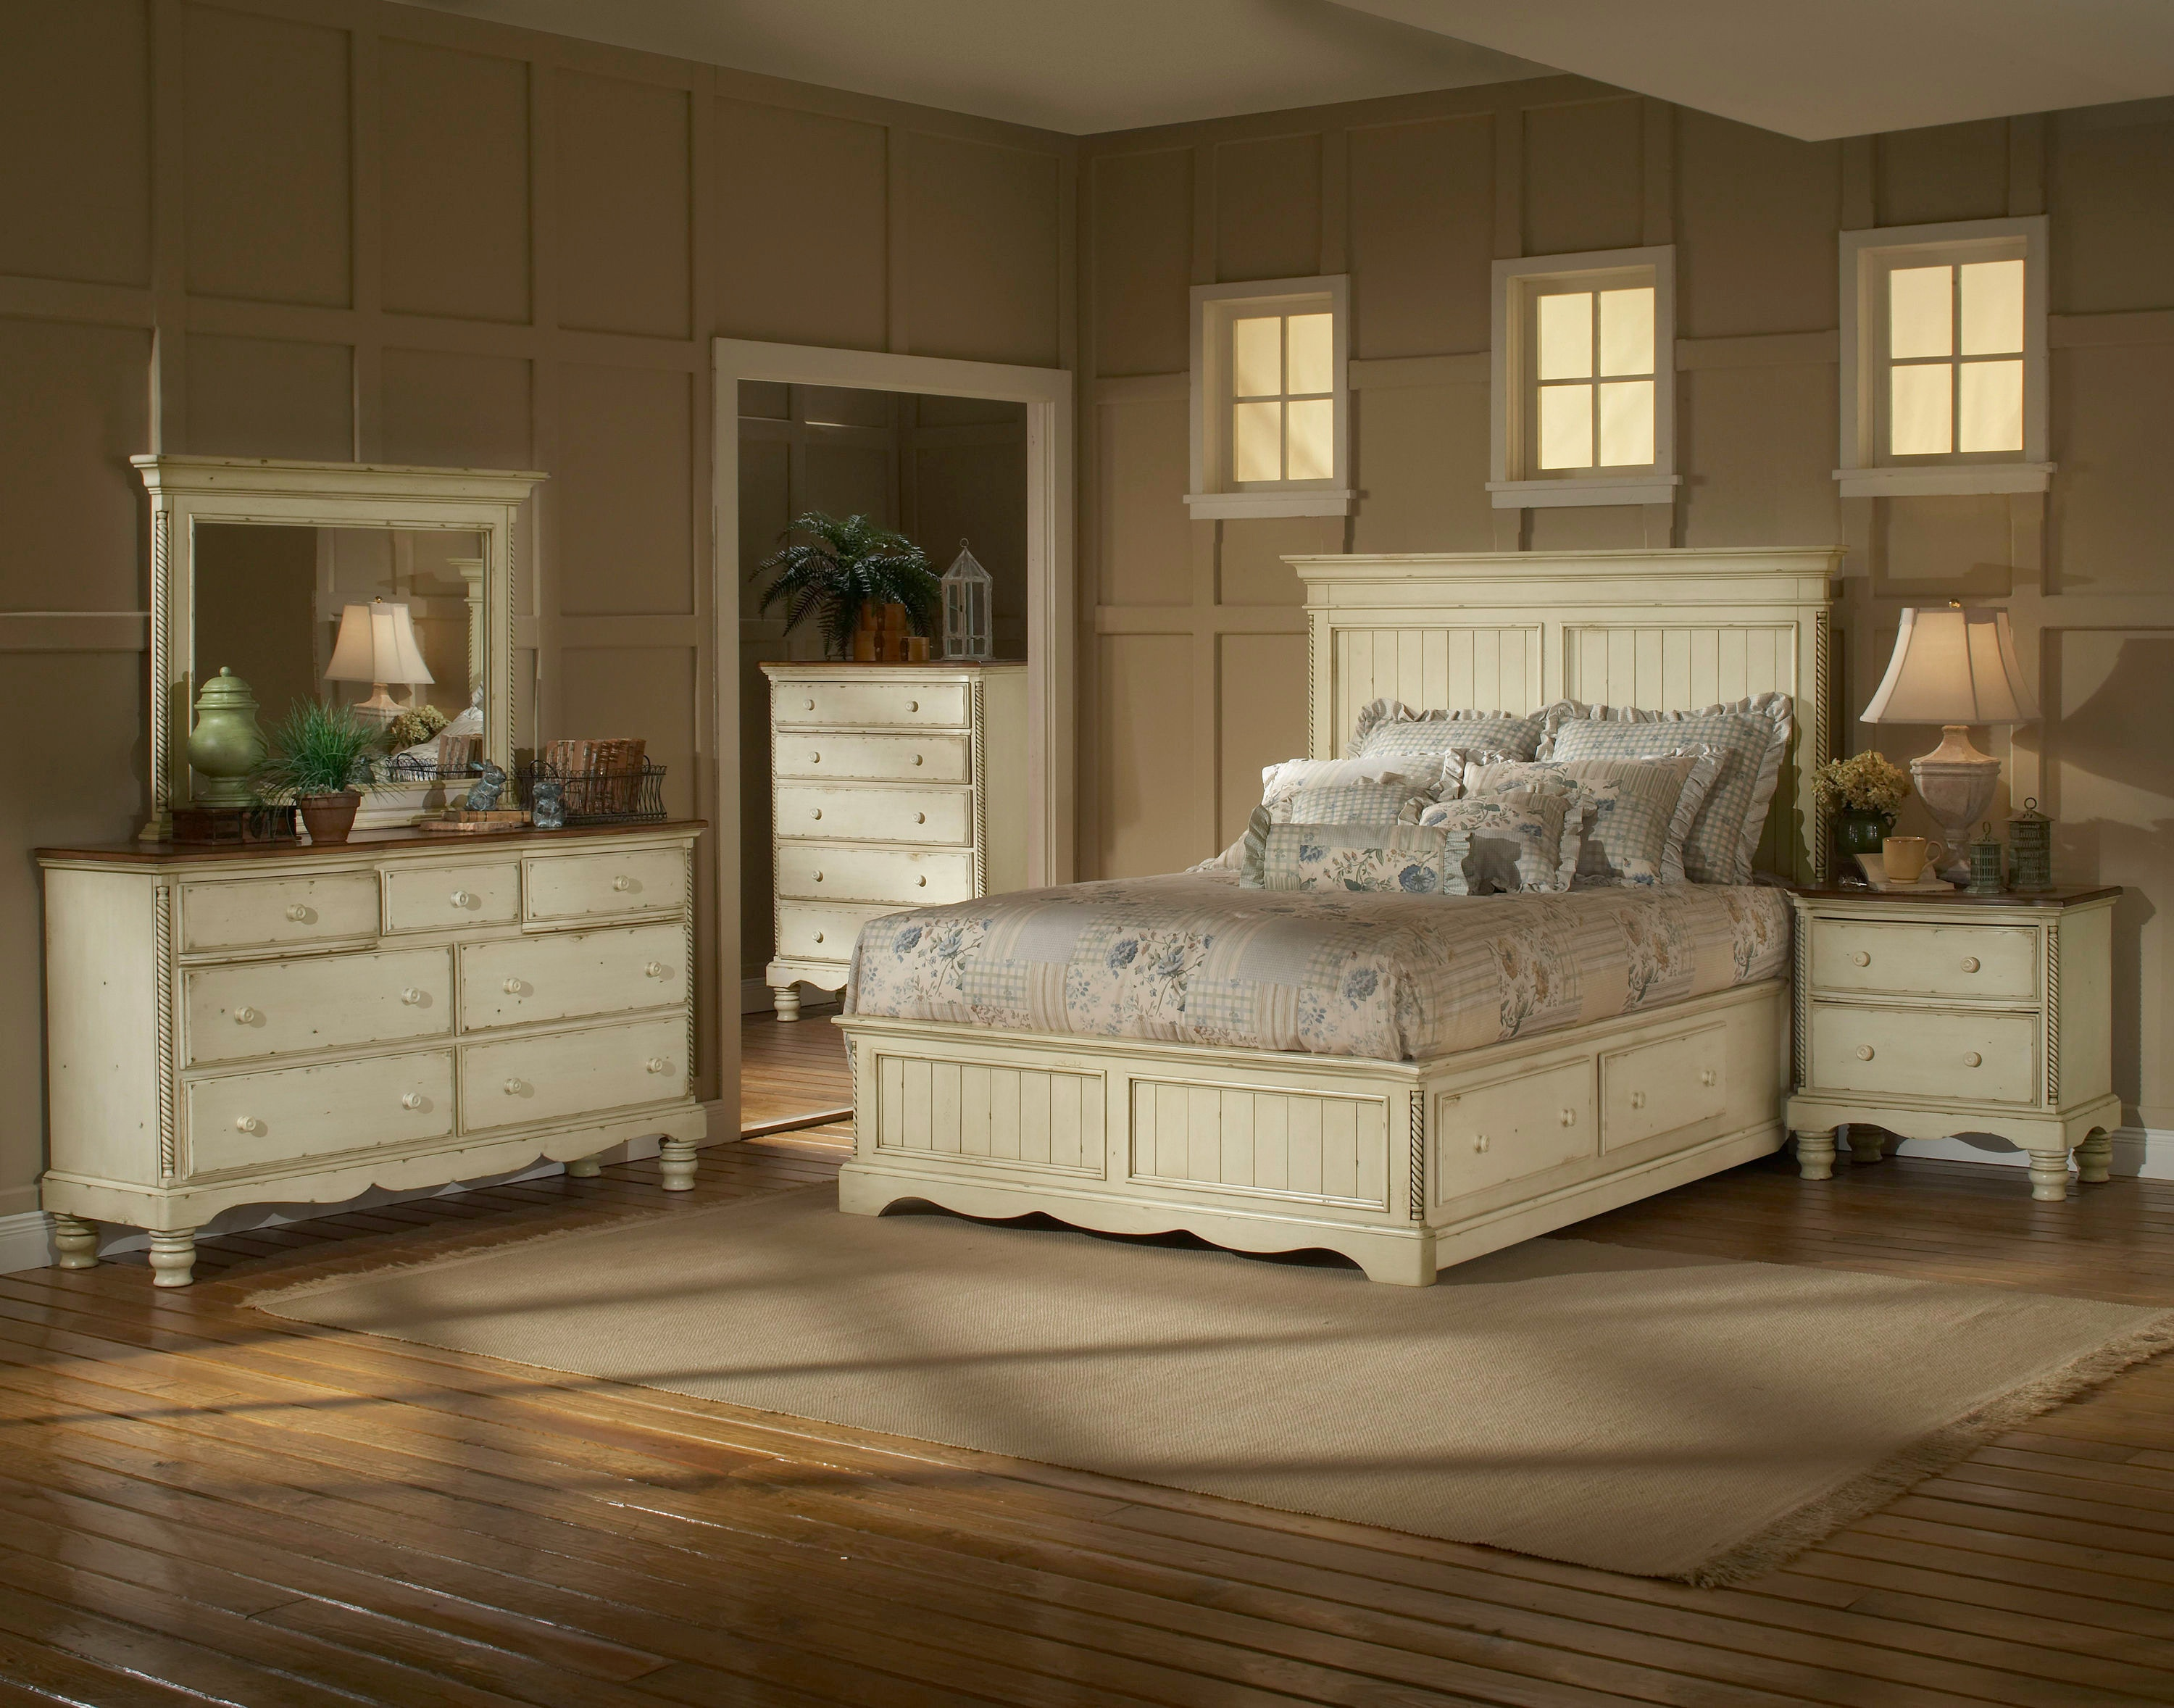 Hillsdale Furniture Wilshire Panel Storage Bed - Queen Rails Nightstand Dresser Mirror & Hillsdale Furniture Bedroom Wilshire Panel Storage Bed - Queen ...